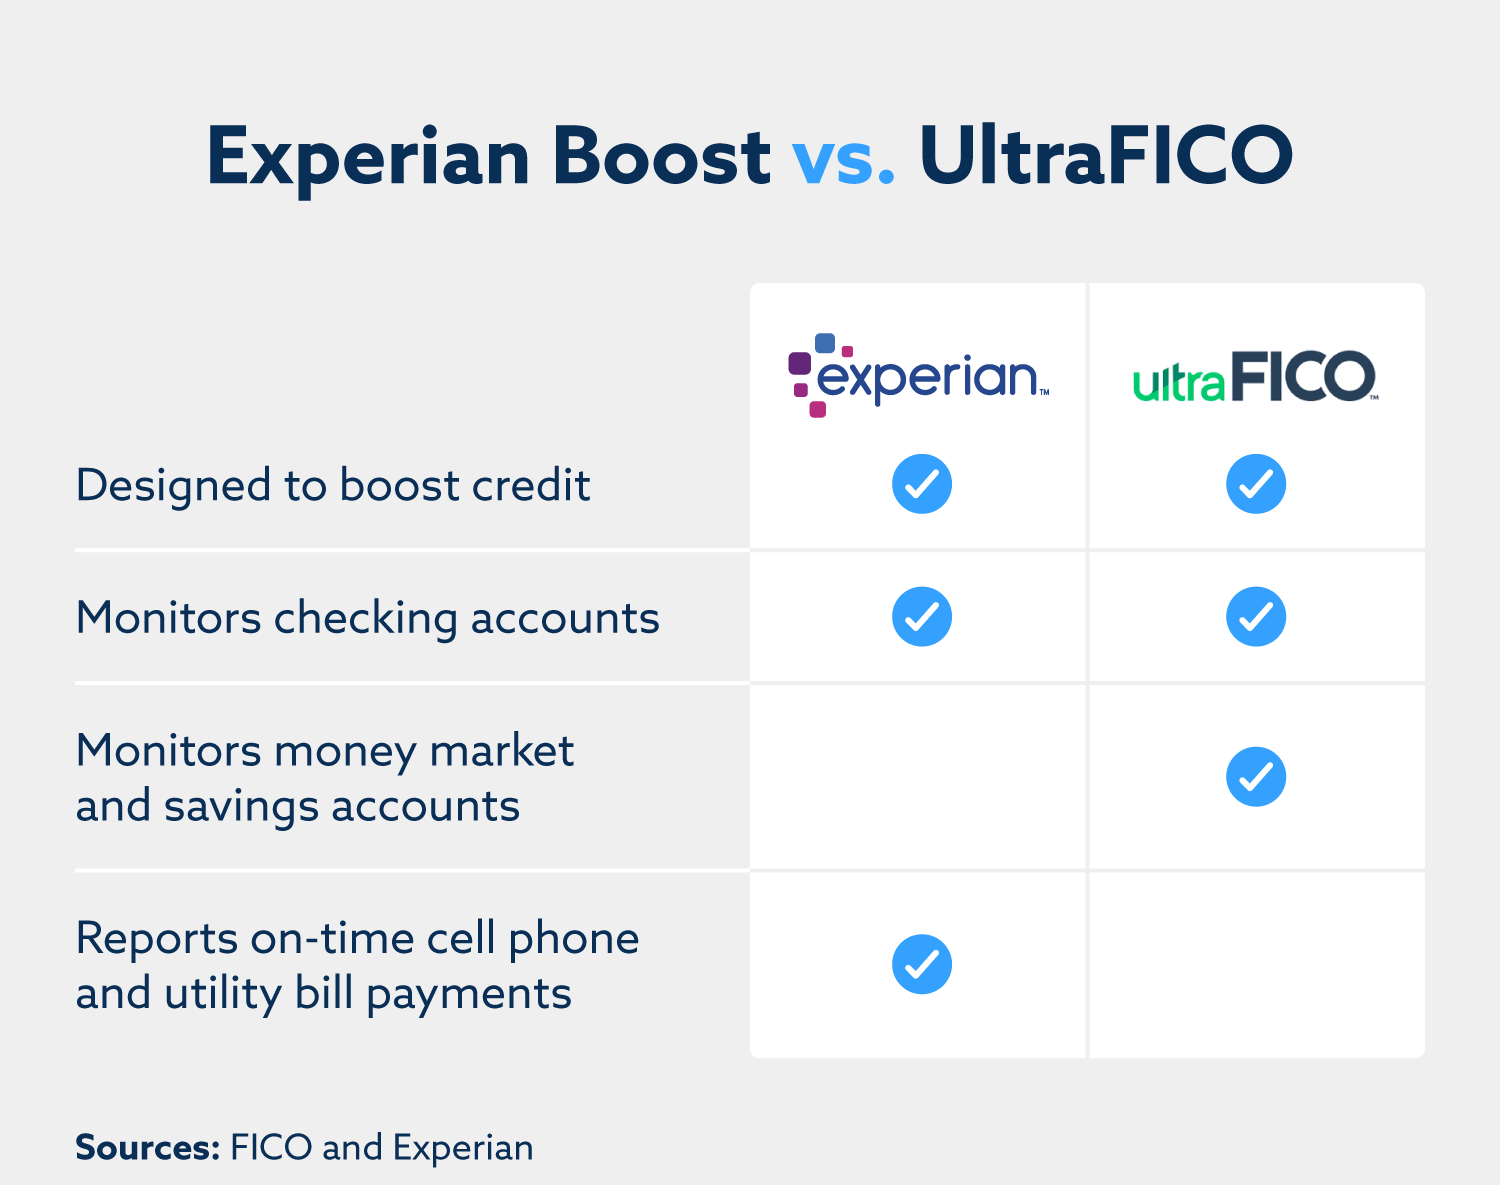 Experian boost is designed to boost credit, monitors checking accounts, and reports on-time cell phone and utility bill payments. ultraFICO is also designed to boost credit, monitors checking accounts, and also monitors money market and savings accounts.